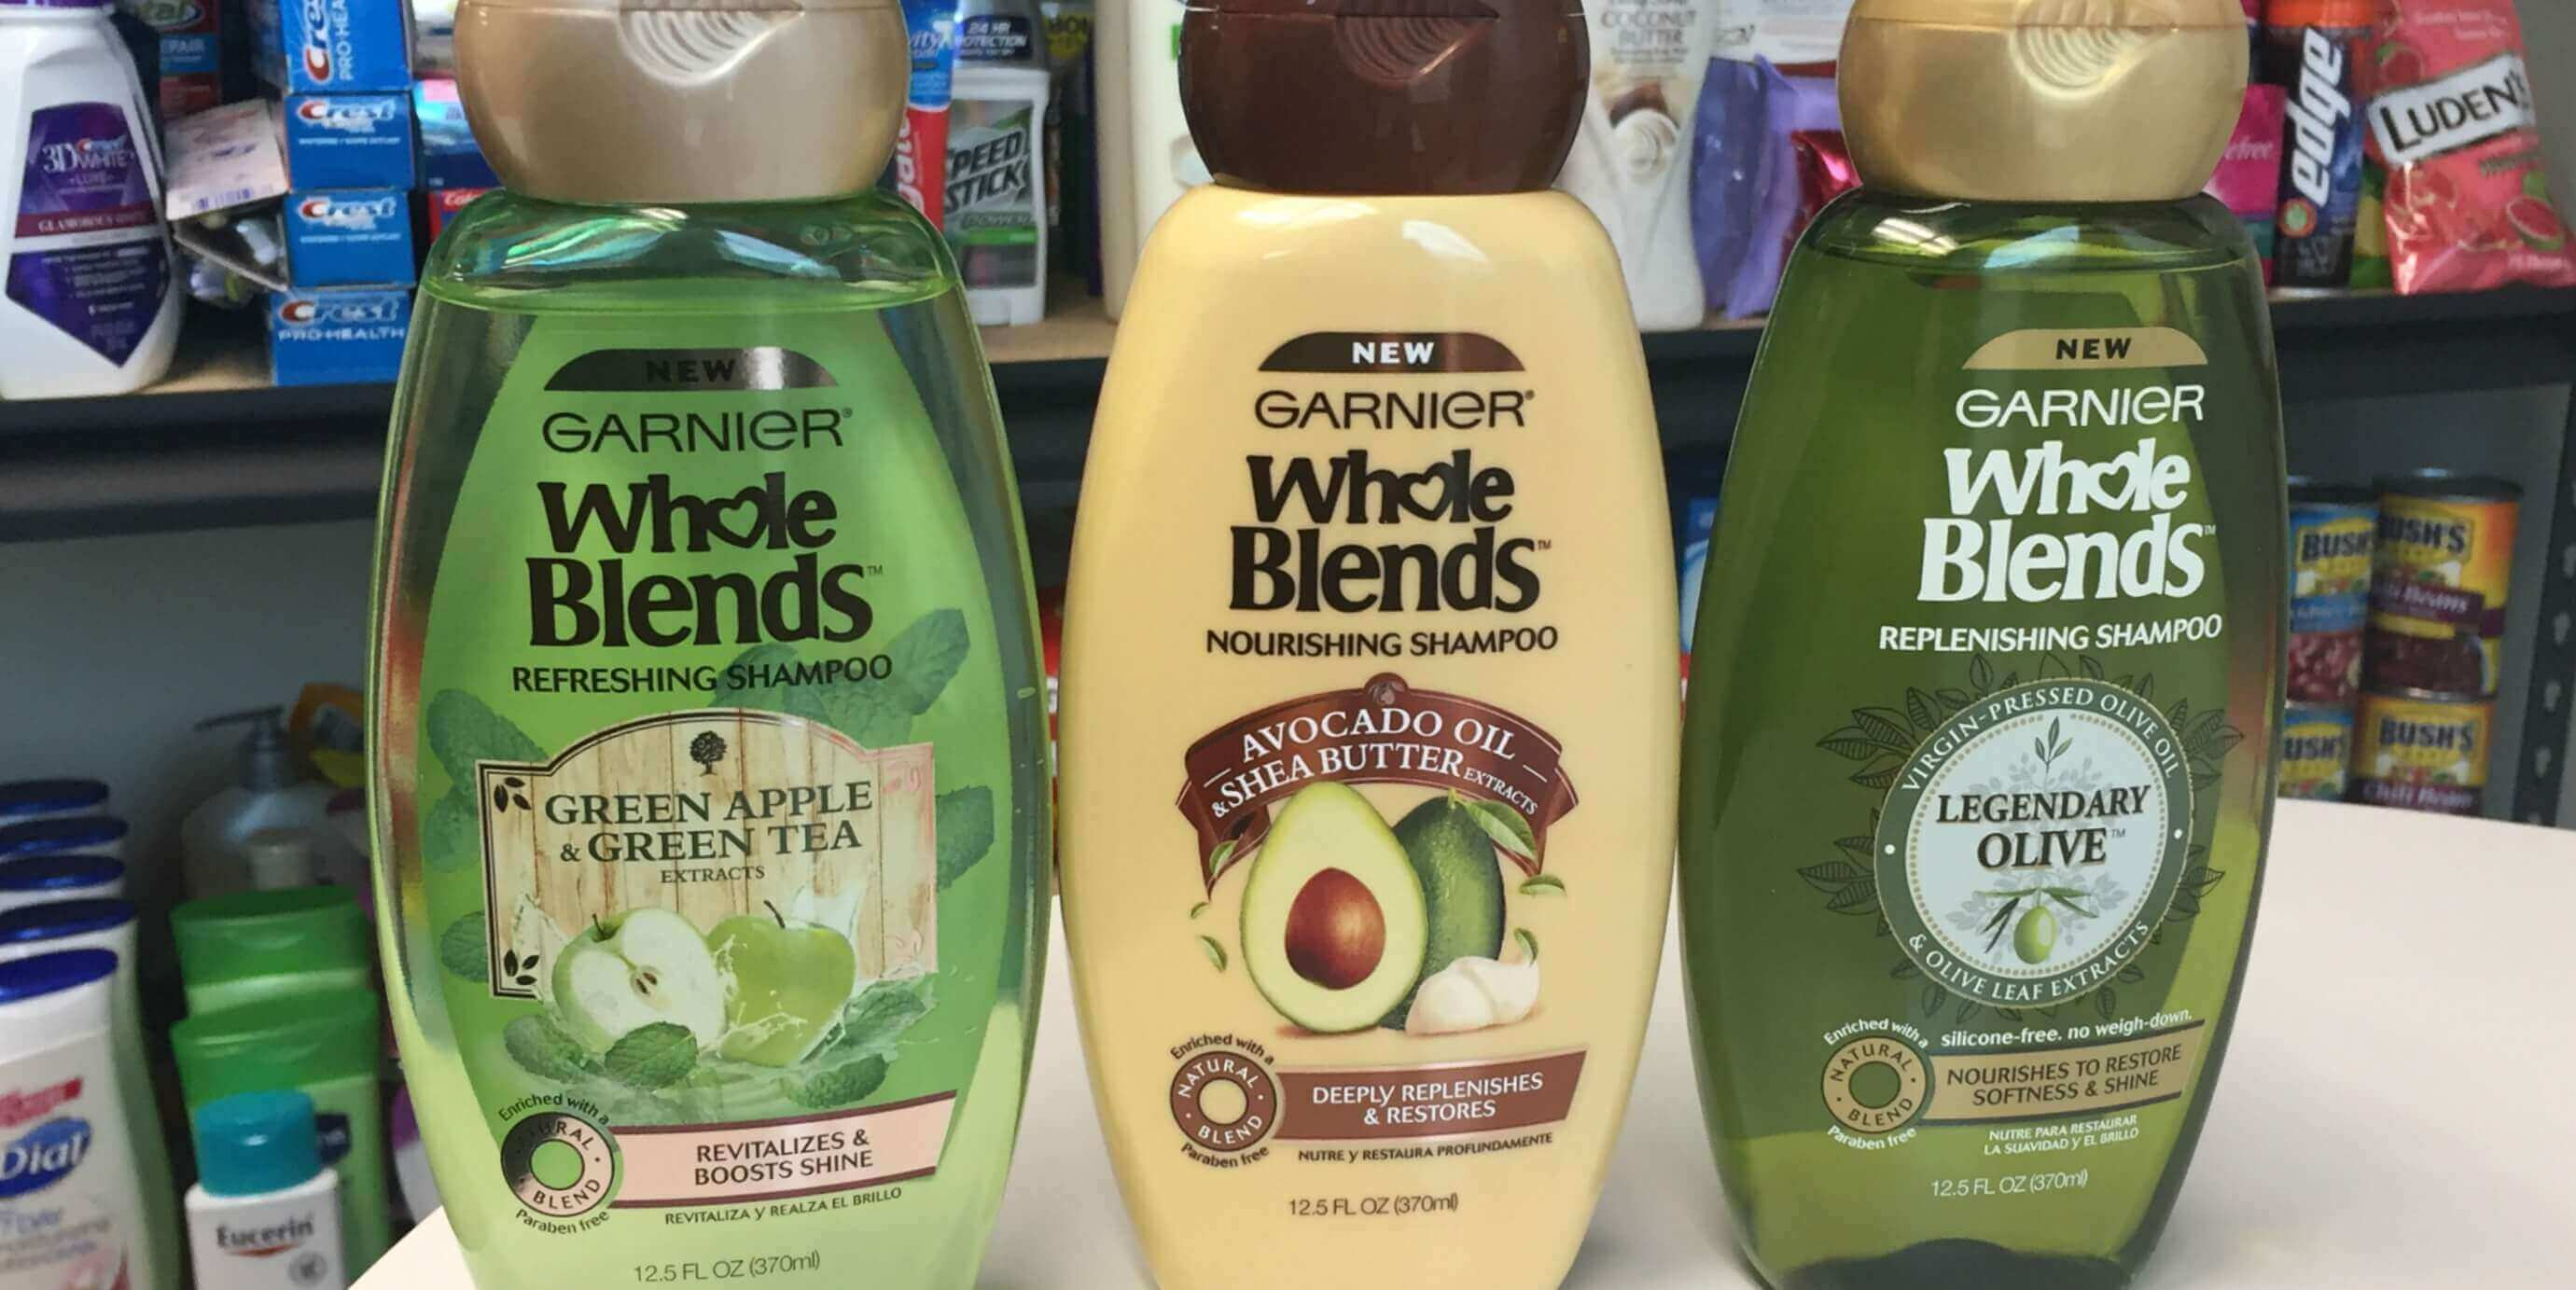 Garnier Whole Blends Coupons February 2019